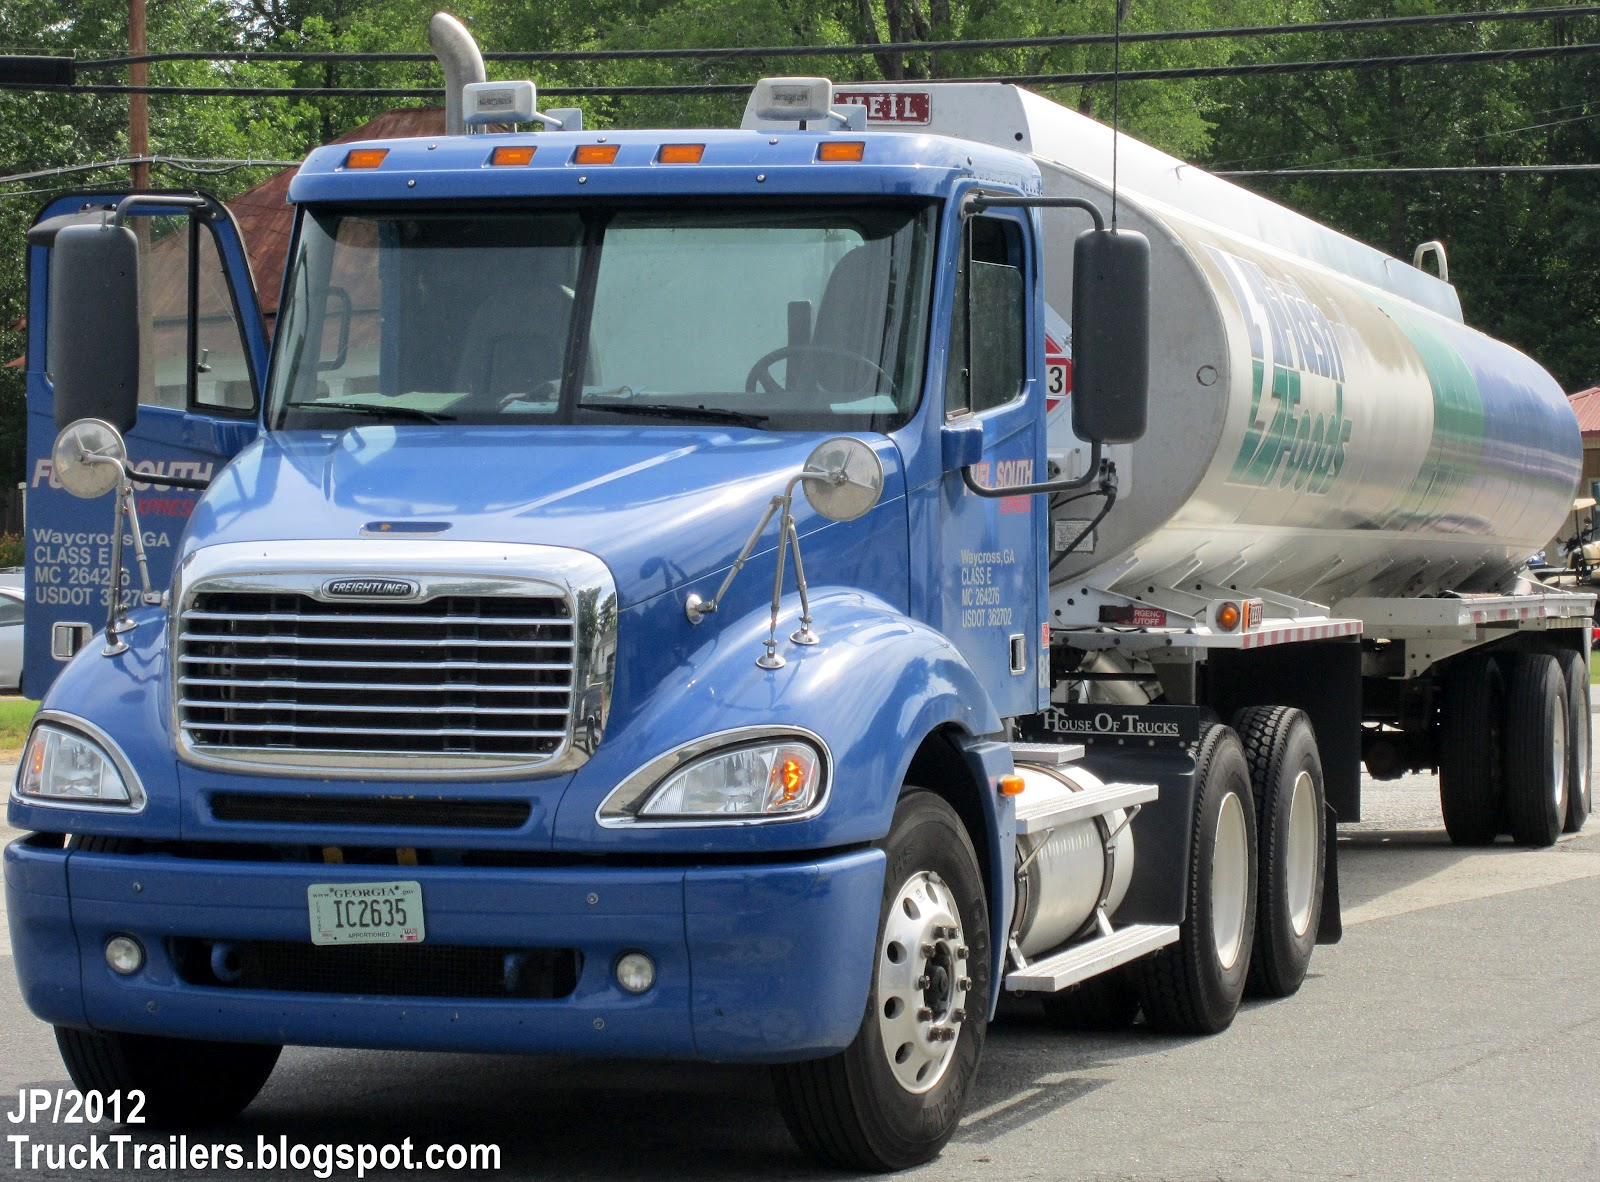 Truck,HEIL Gasoline Fuel Tanker Trailer, Flash Foods Gas Station Store